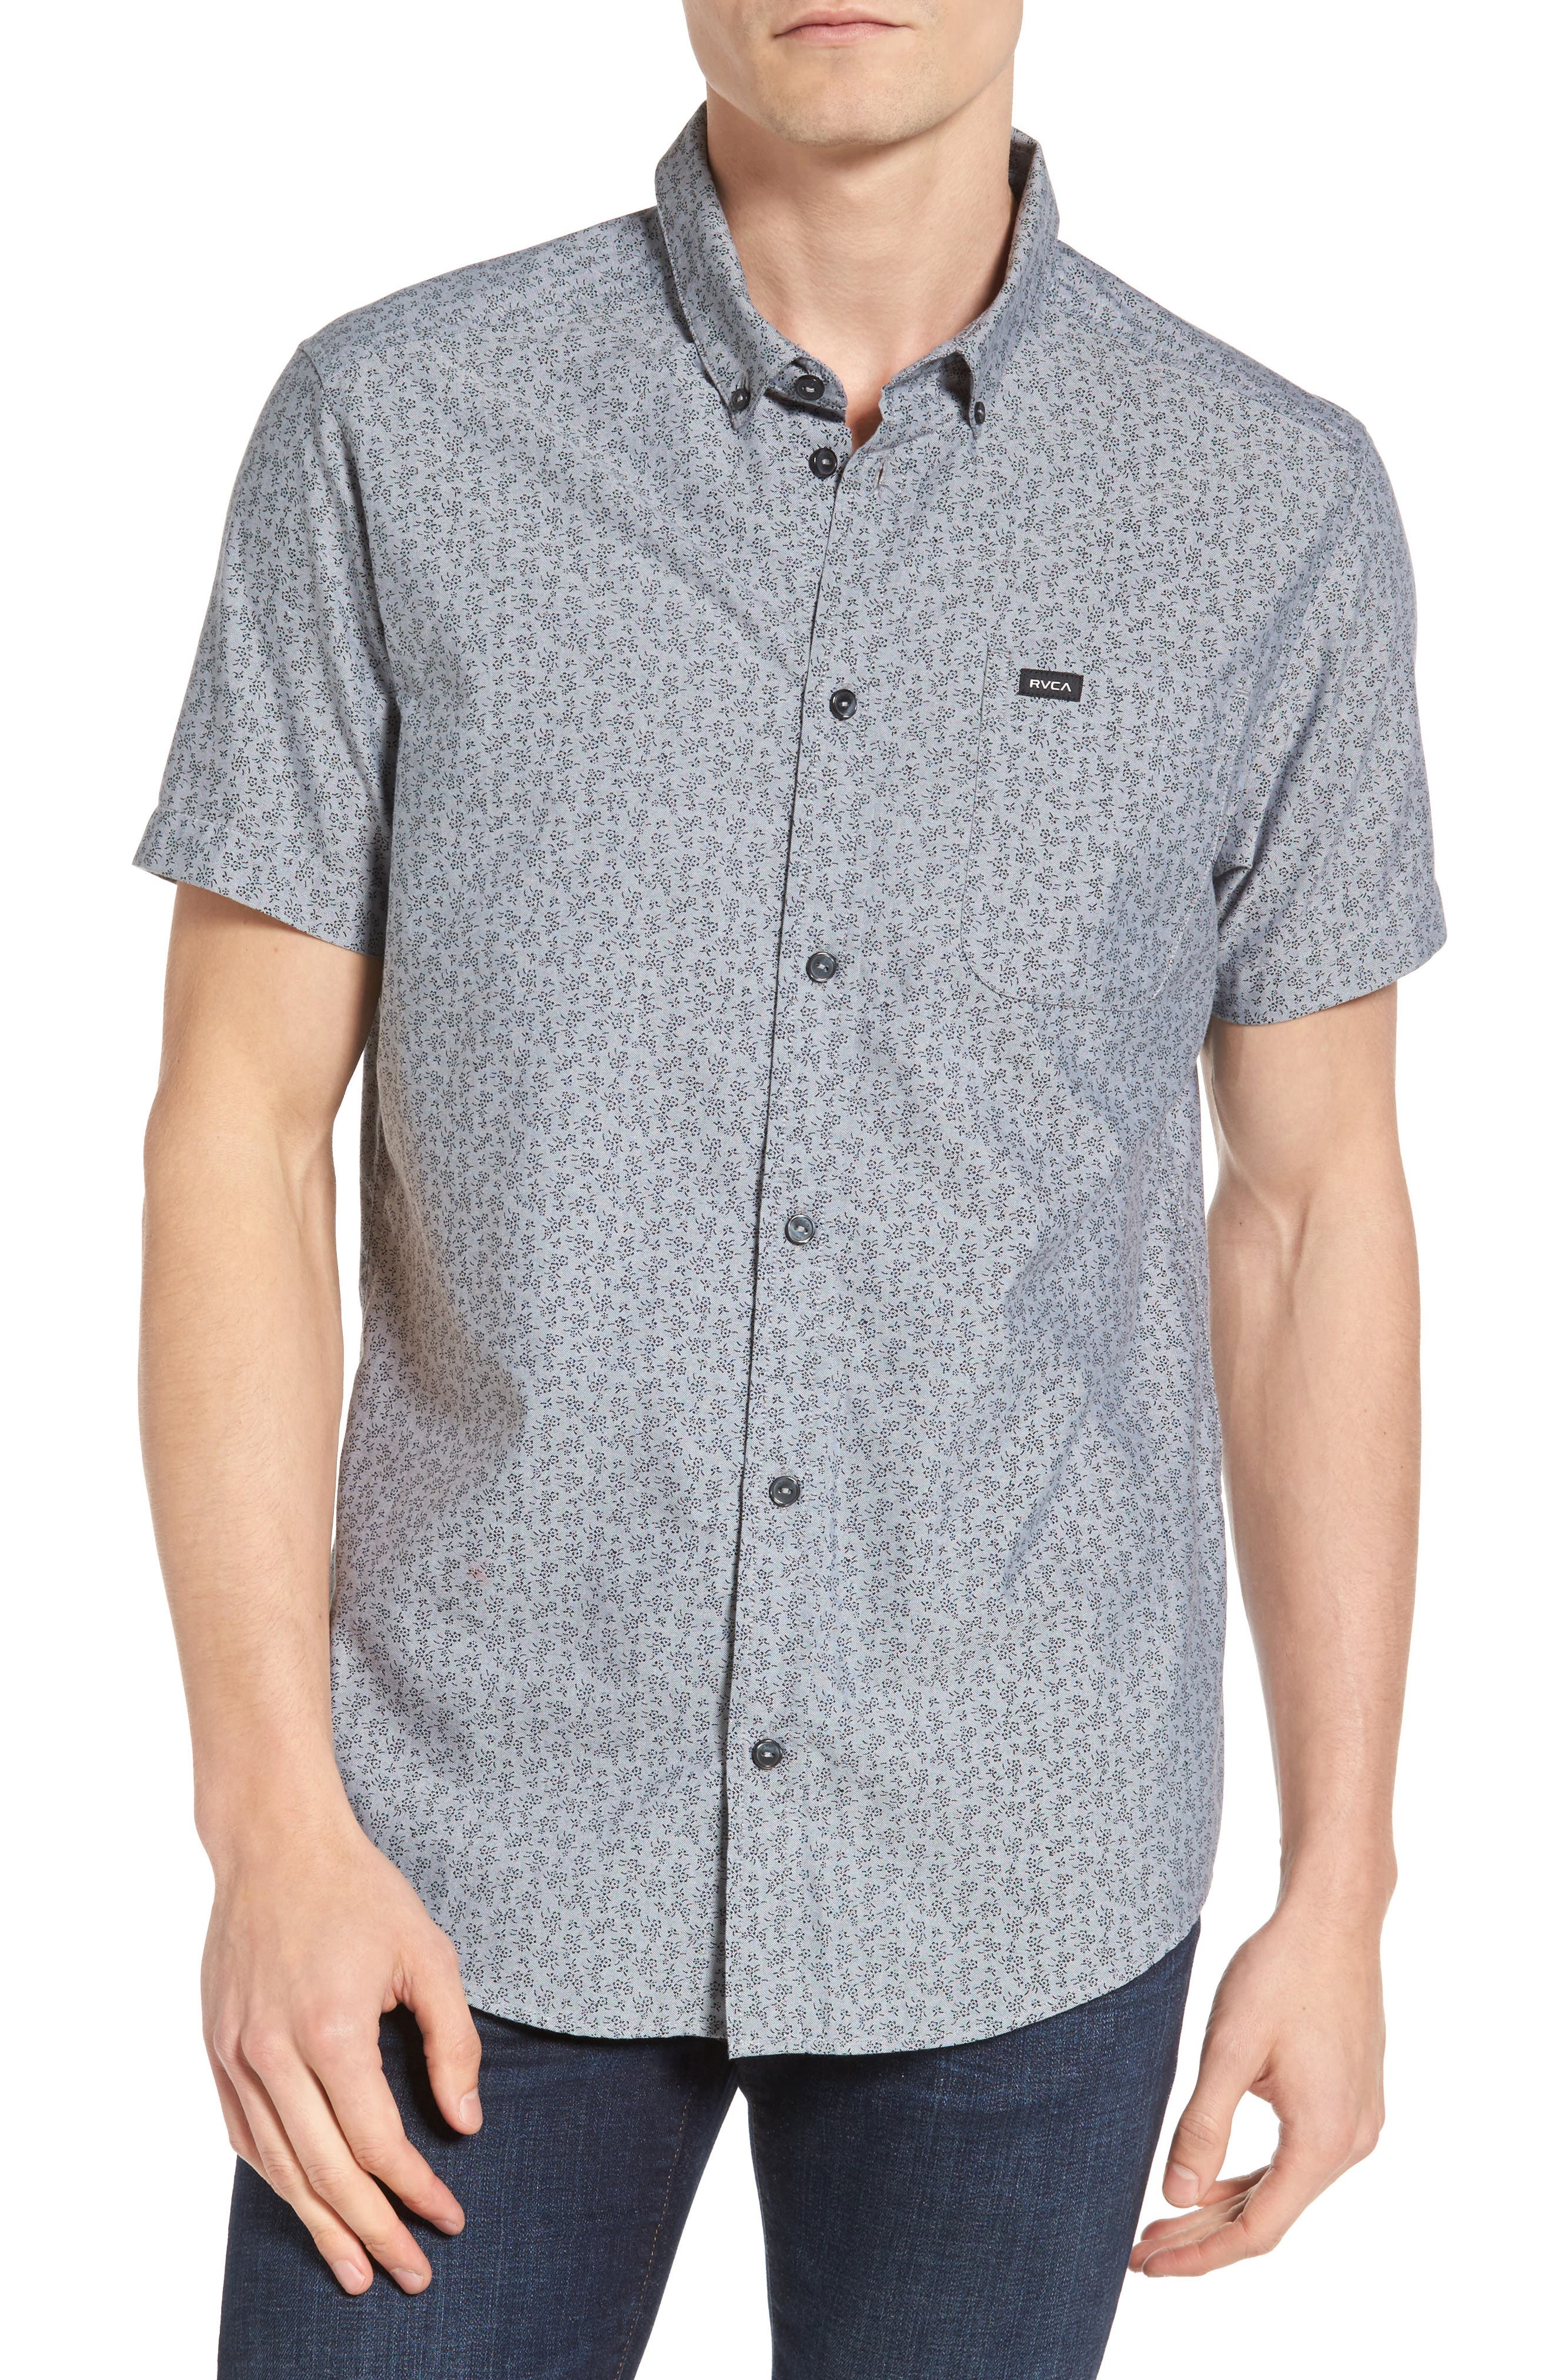 Alternate Image 1 Selected - RVCA That'll Do Floral Woven Shirt